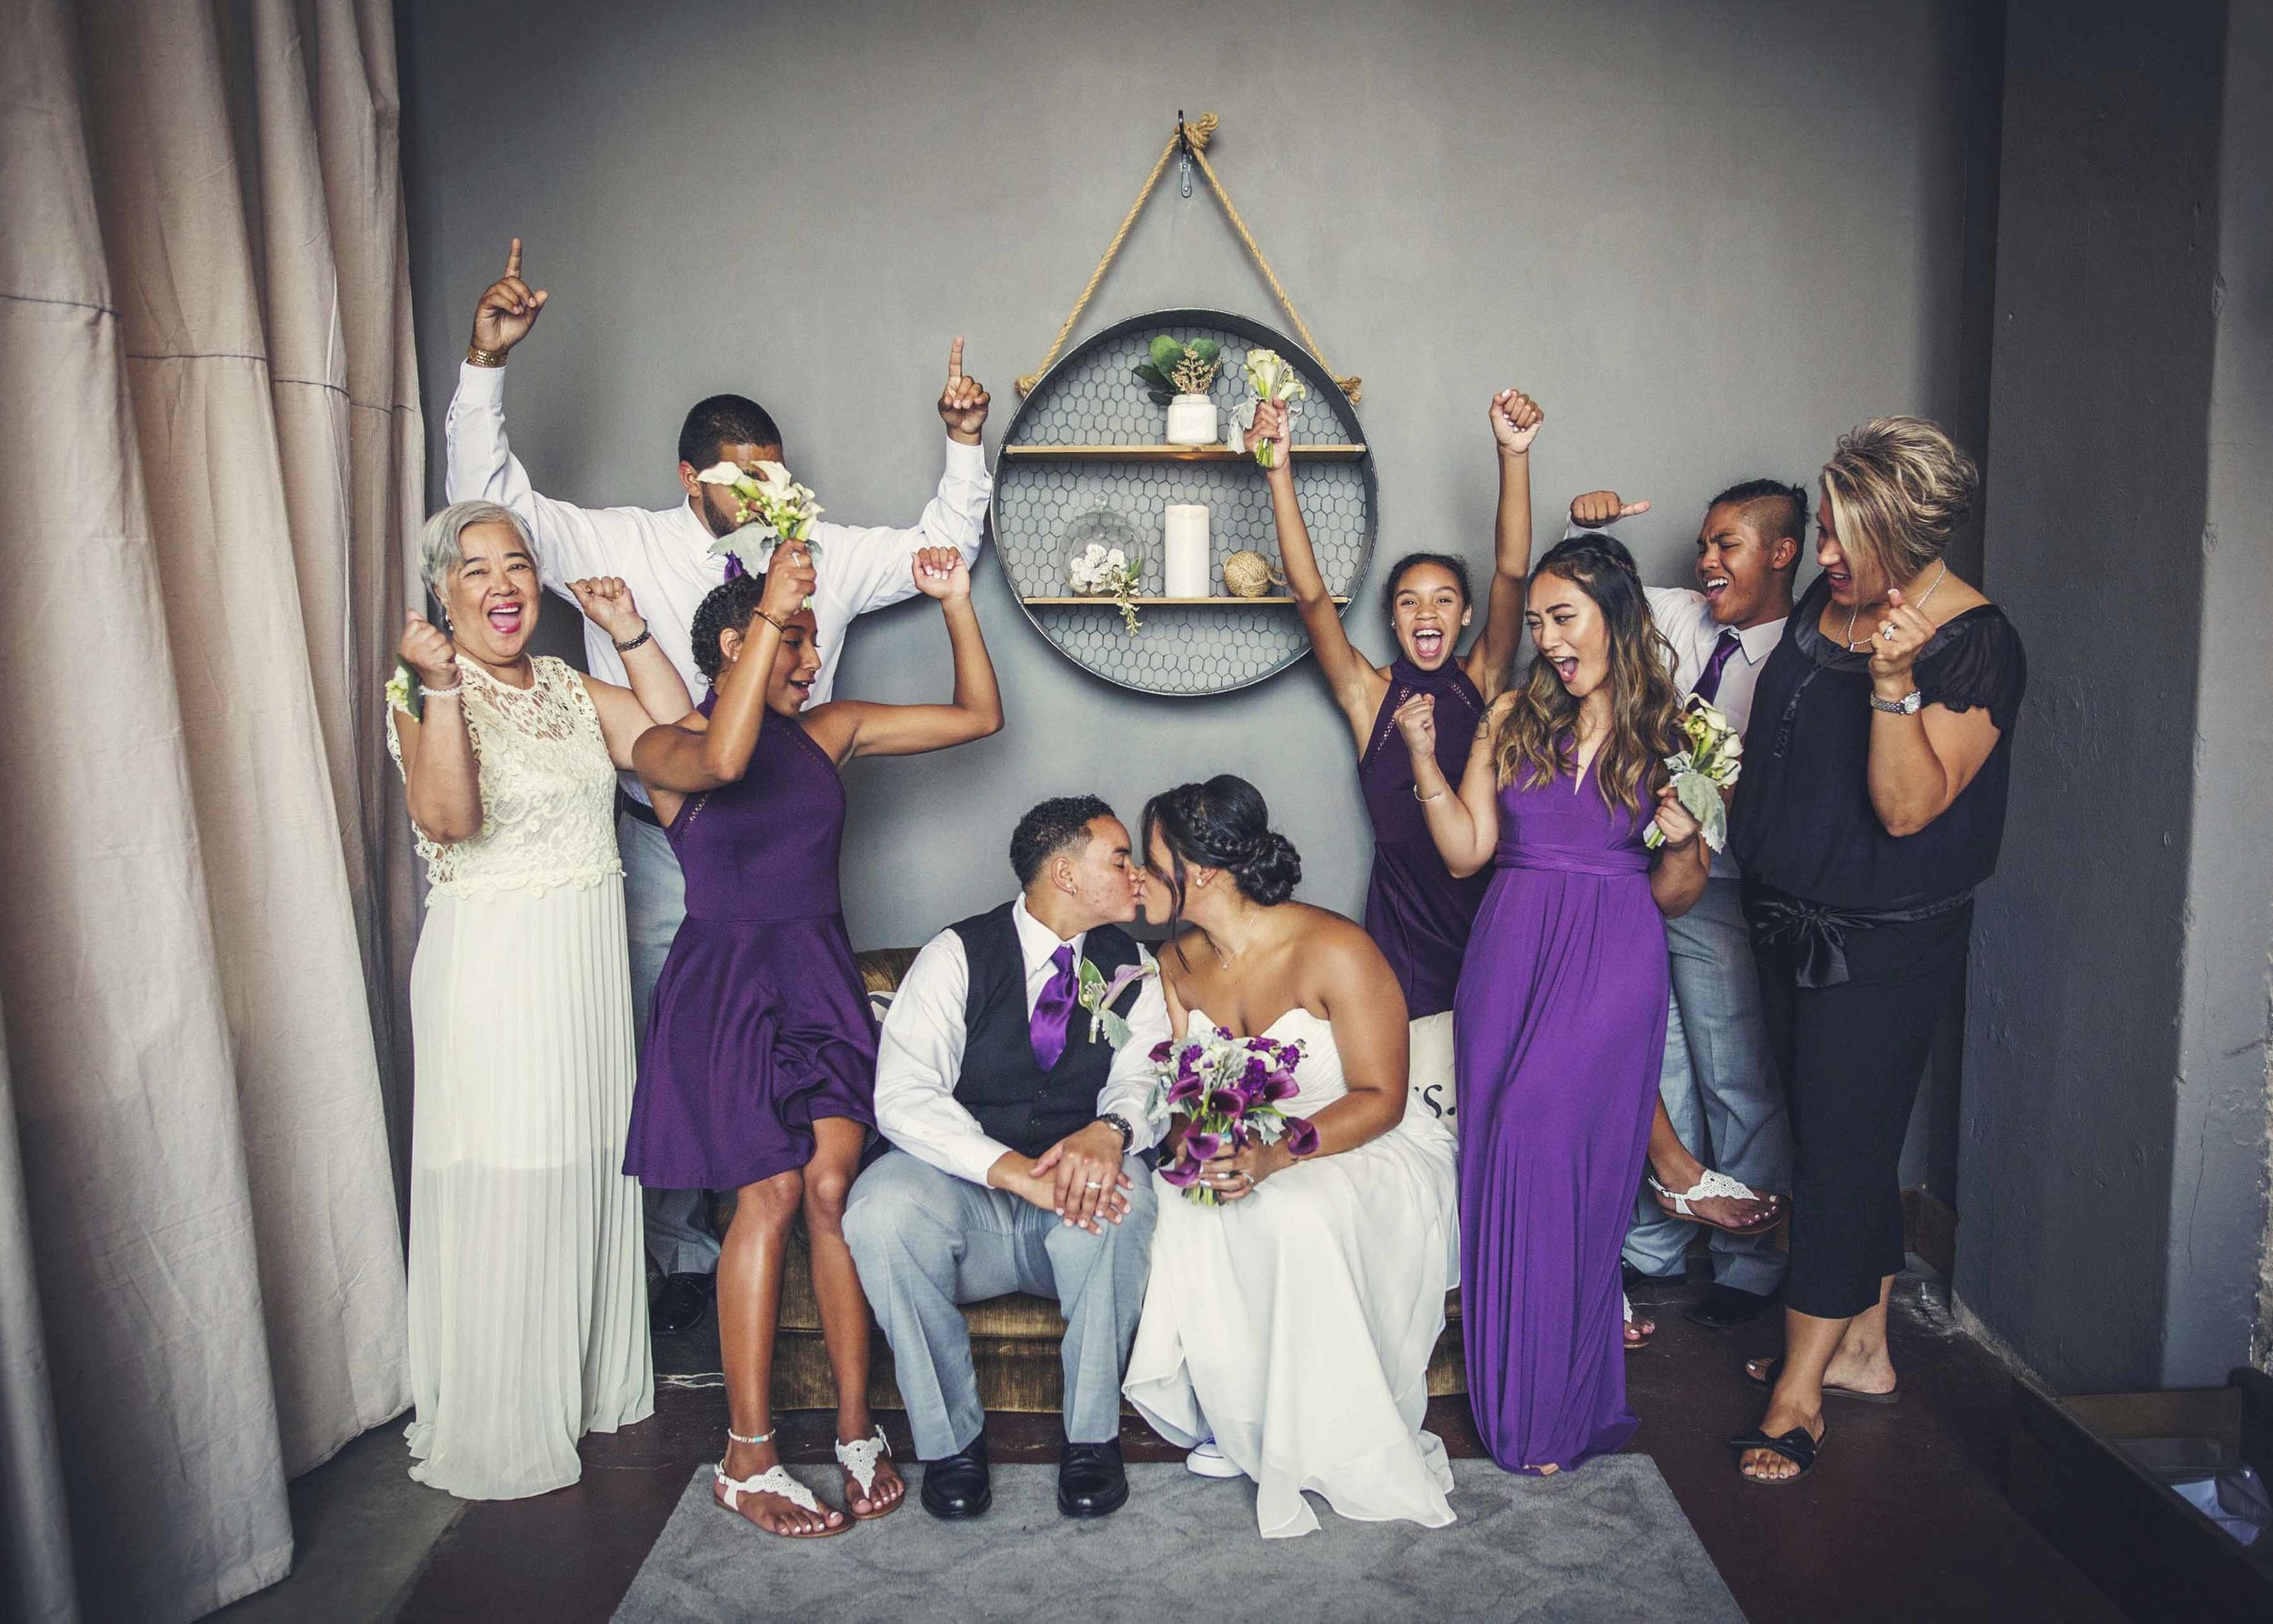 HAPPILY EVER AFTER - SEE OUR COUPLES' DROOL WORTHY WEDDINGS